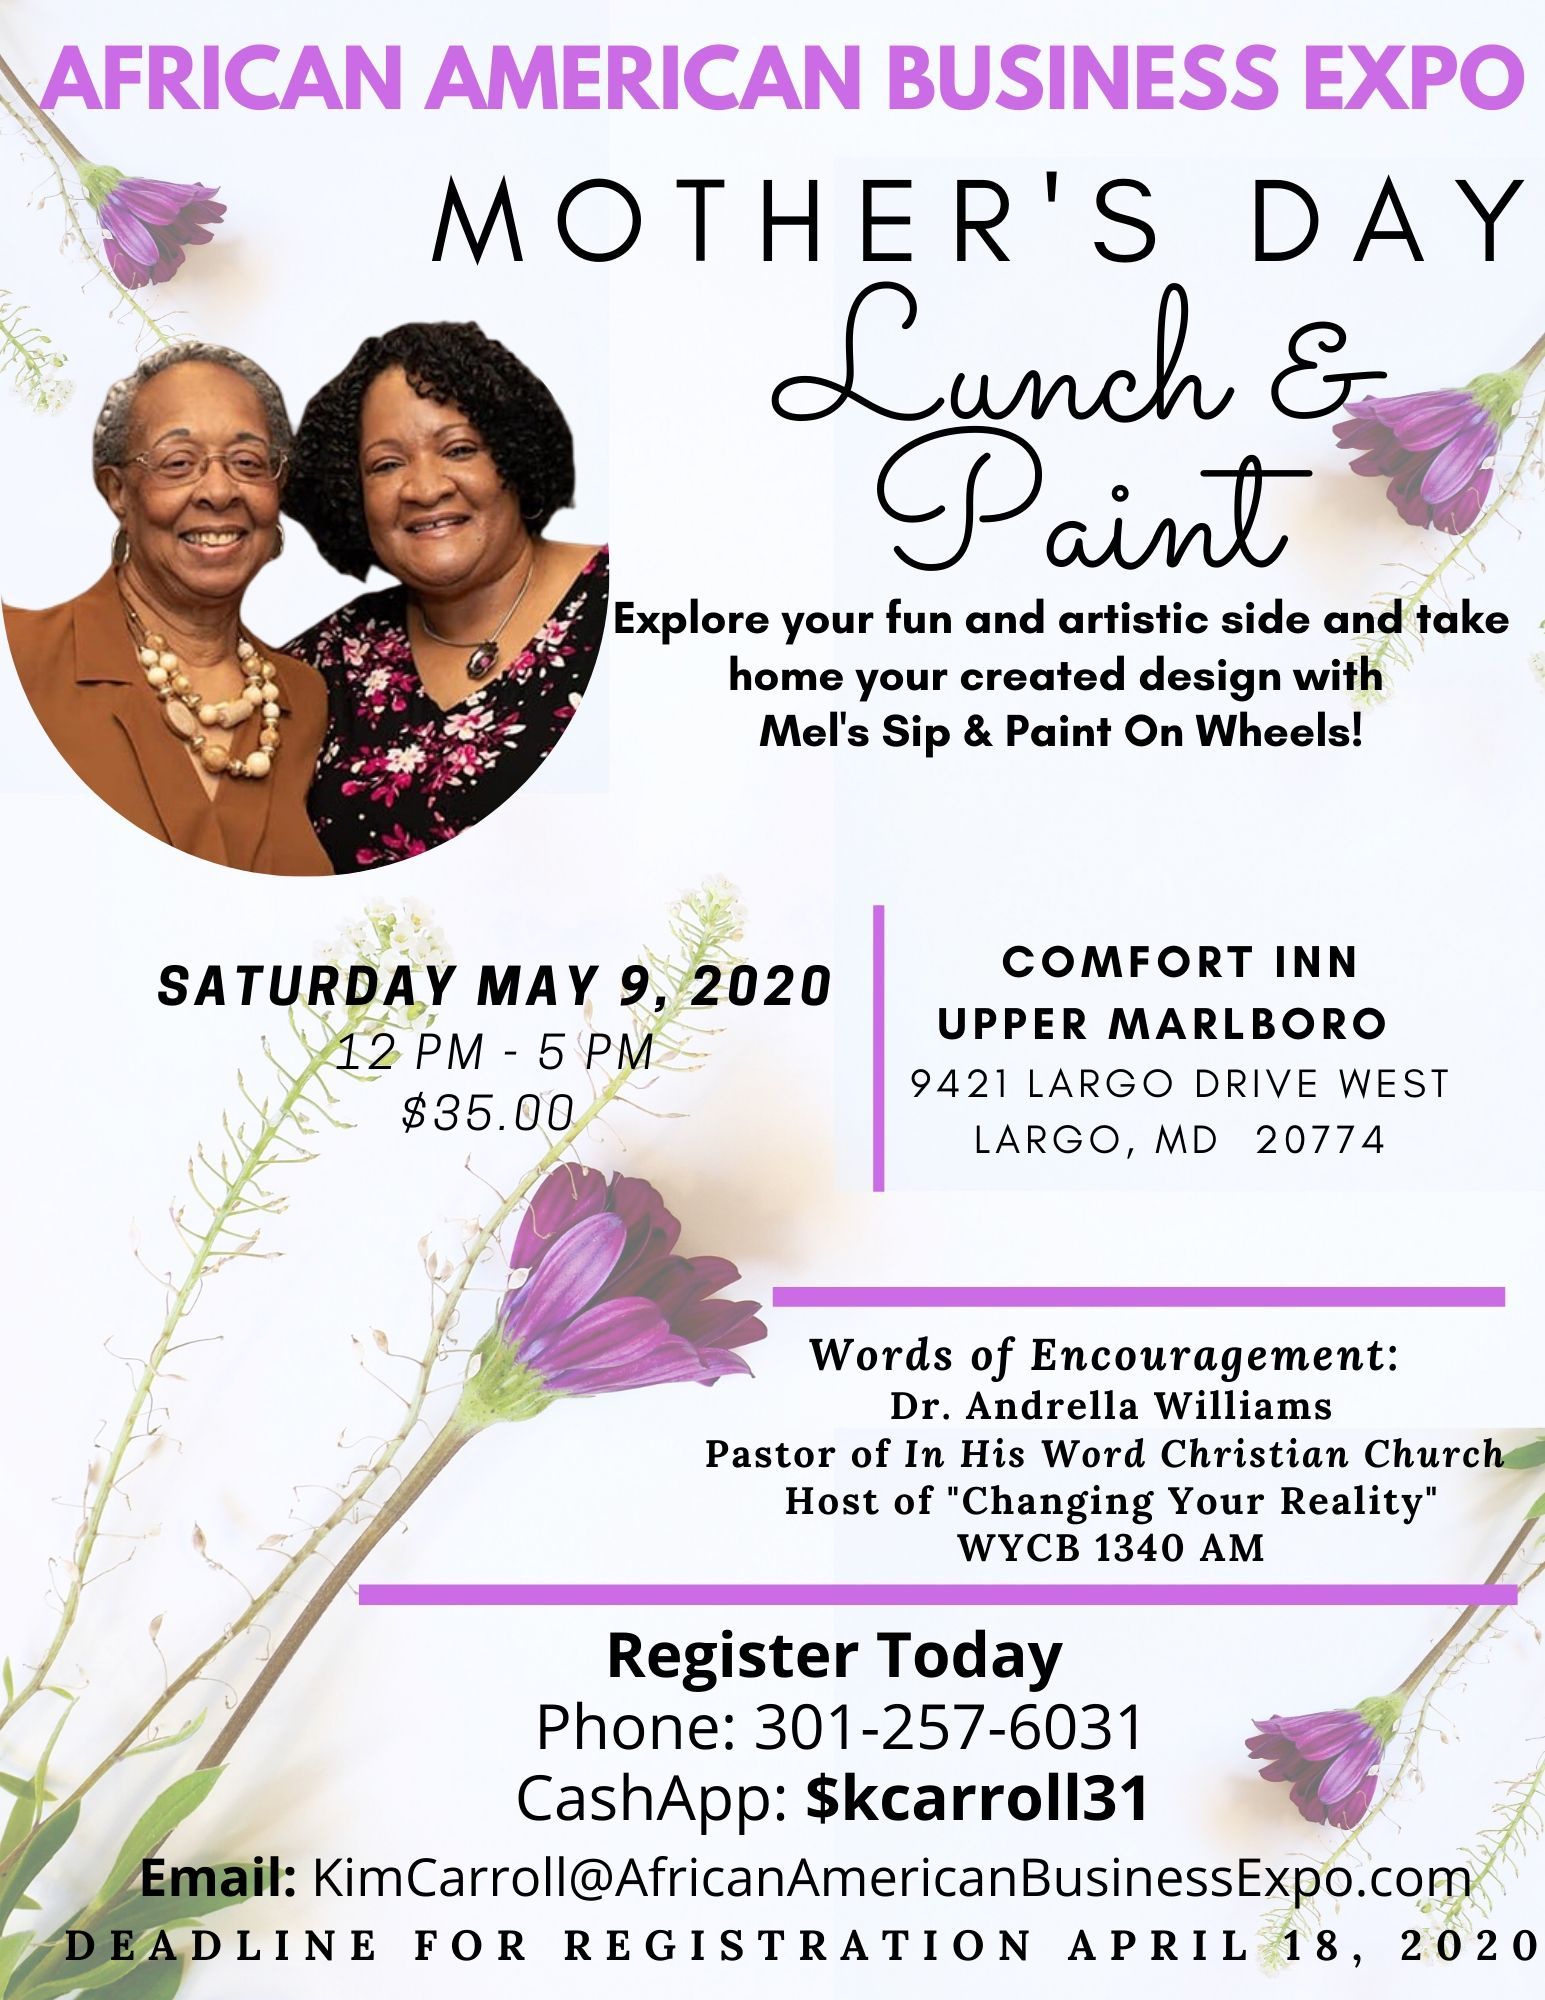 Copy_of_MOTHER'S_DAY_LUNCH_AND_PAINT